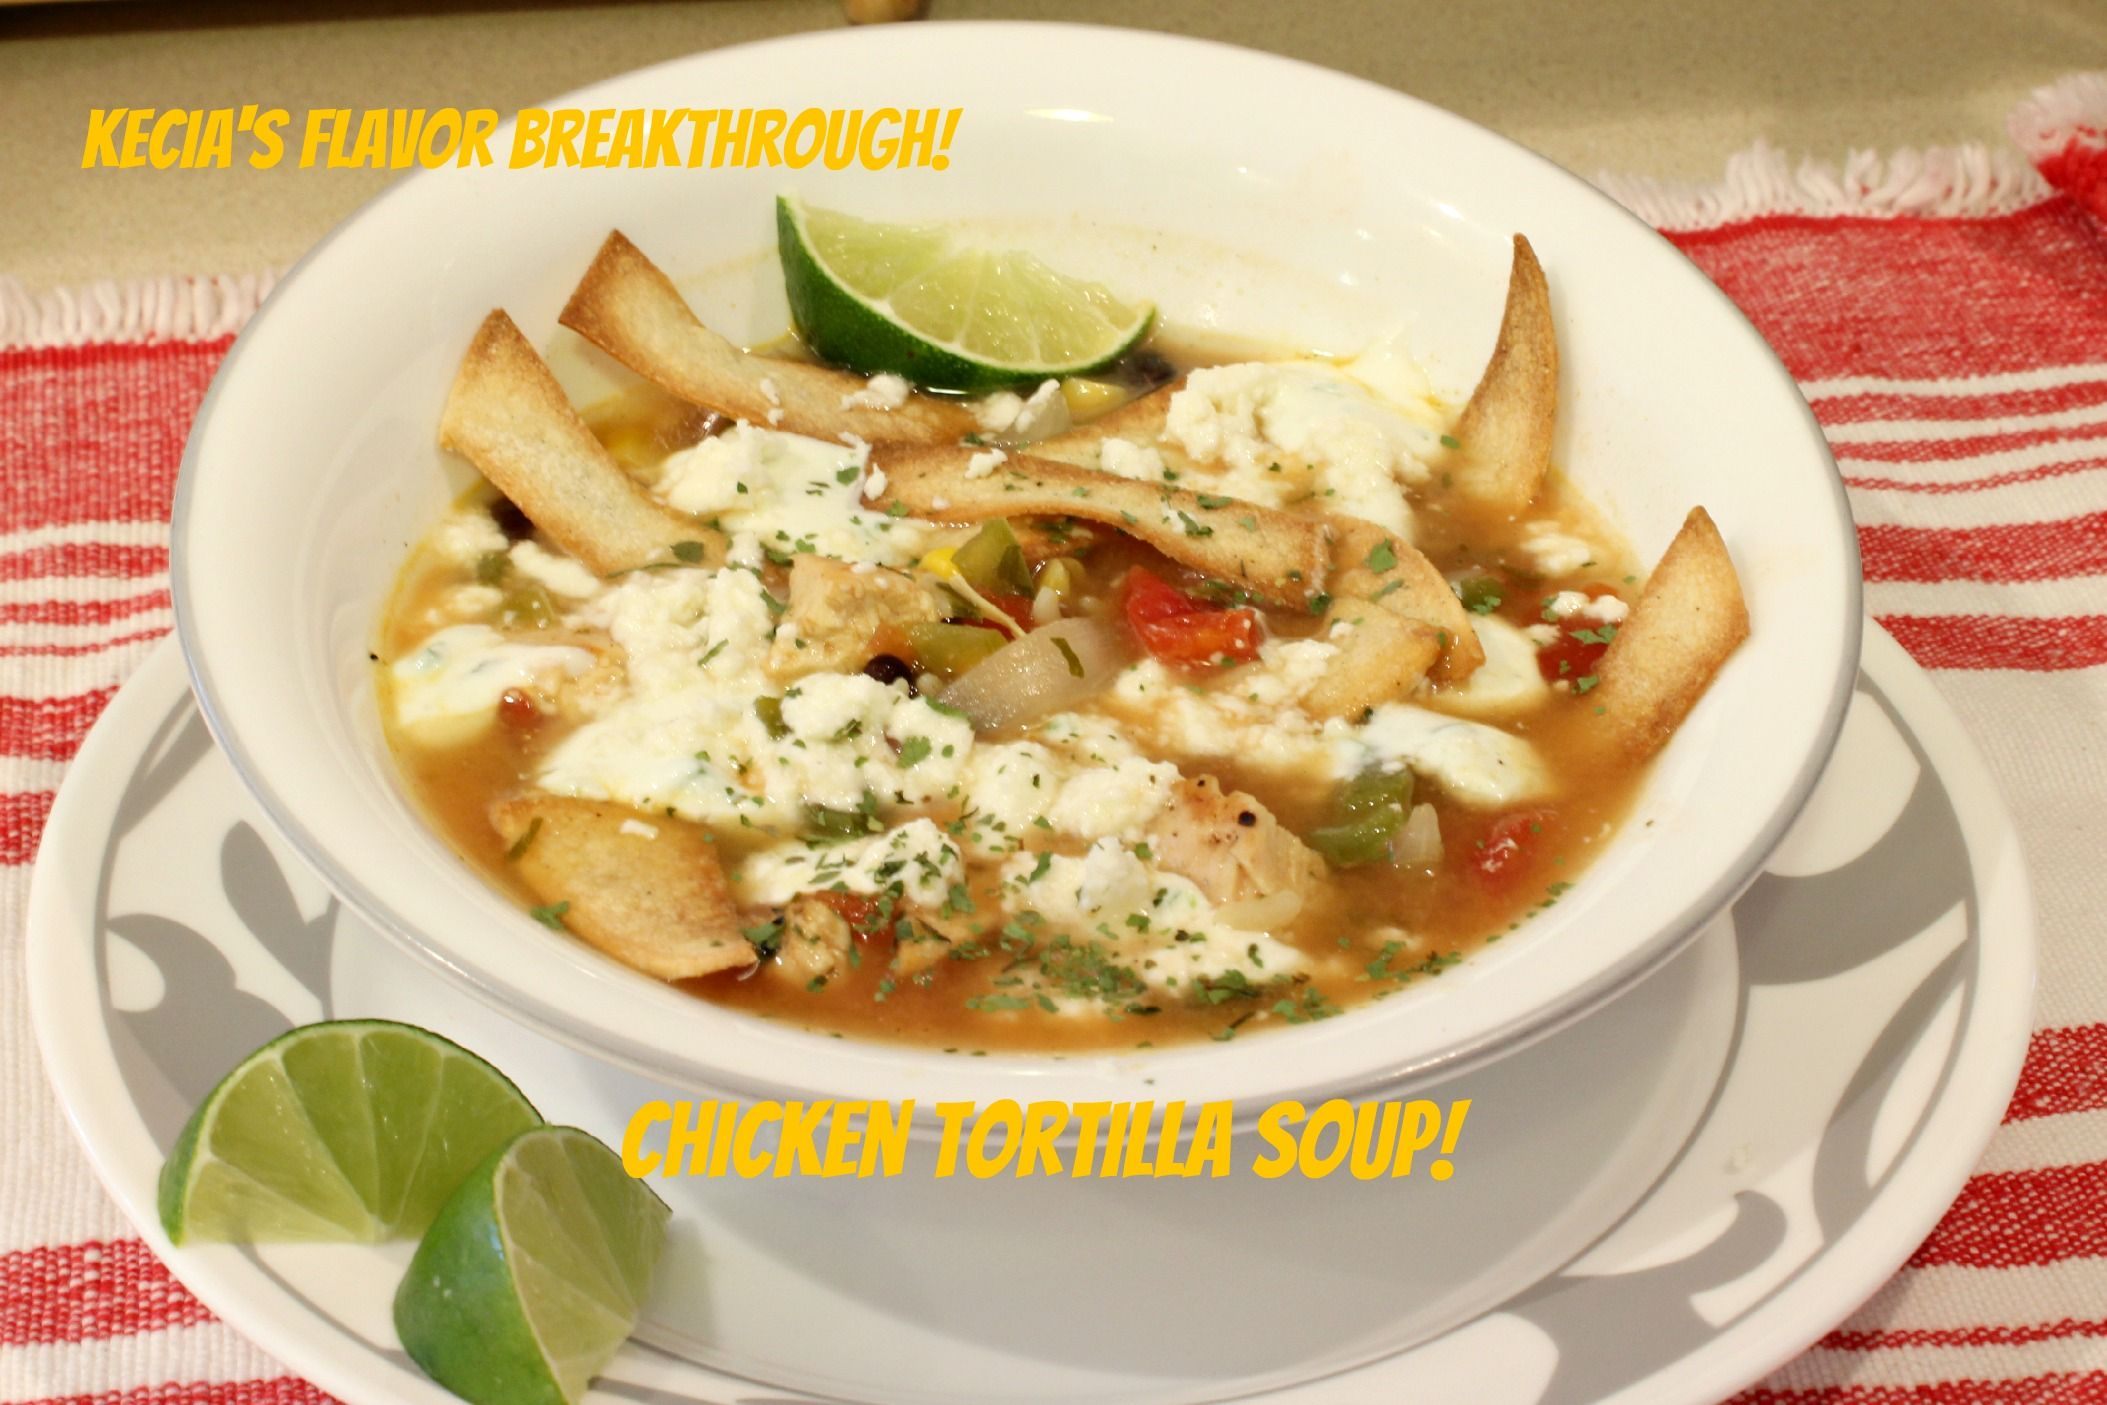 Grilled Chicken Tortilla Soup! By: Kecia's Flavor Breakthrough! I am totally craving soup!So, what else is new, right?I have some chicken thawing in the refrigerator, the weather is much cooler, I have jalapenos and bell peppers sitting on the counter! Sounds like a great idea for some delicious, southwestern type soup! And I am missing…